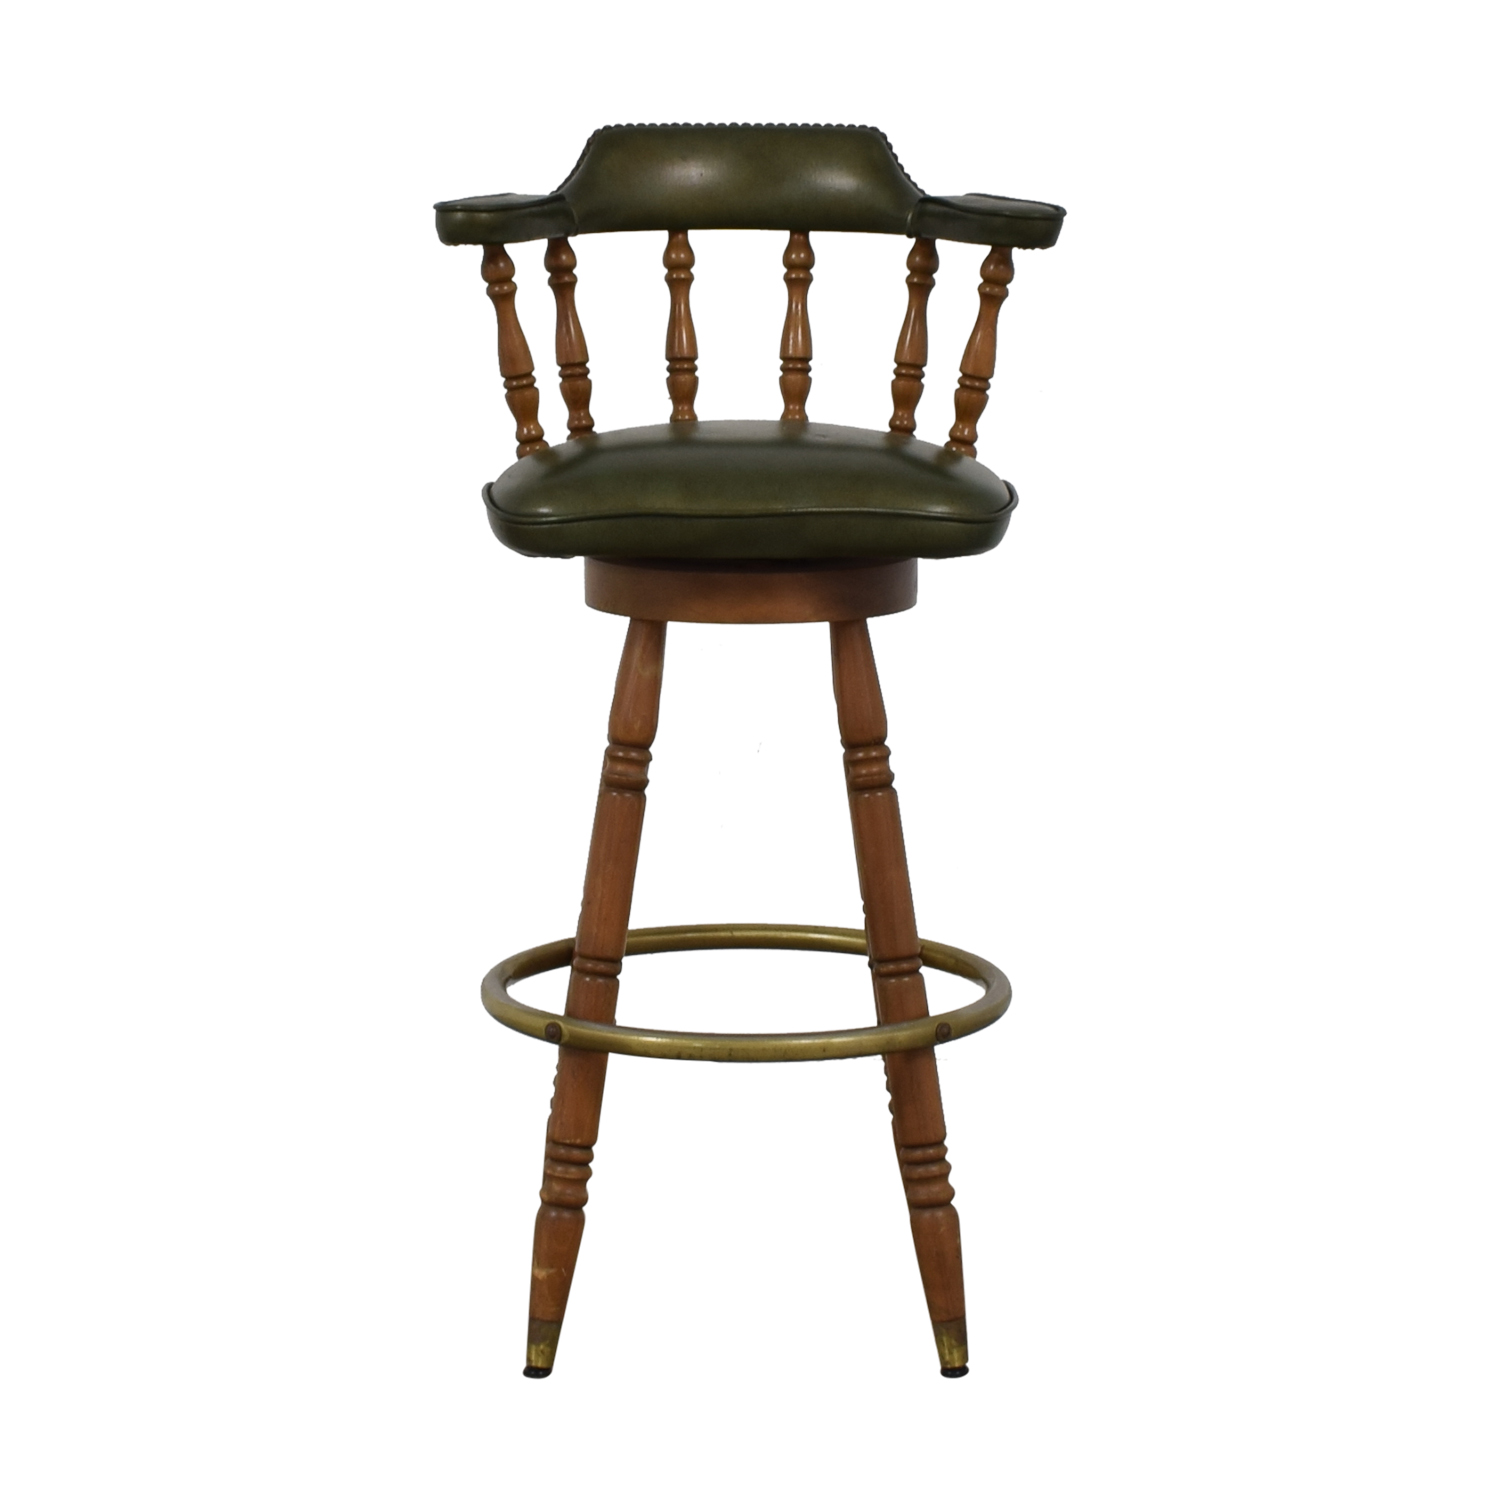 Vintage Green Leather Swivel Bar Stool